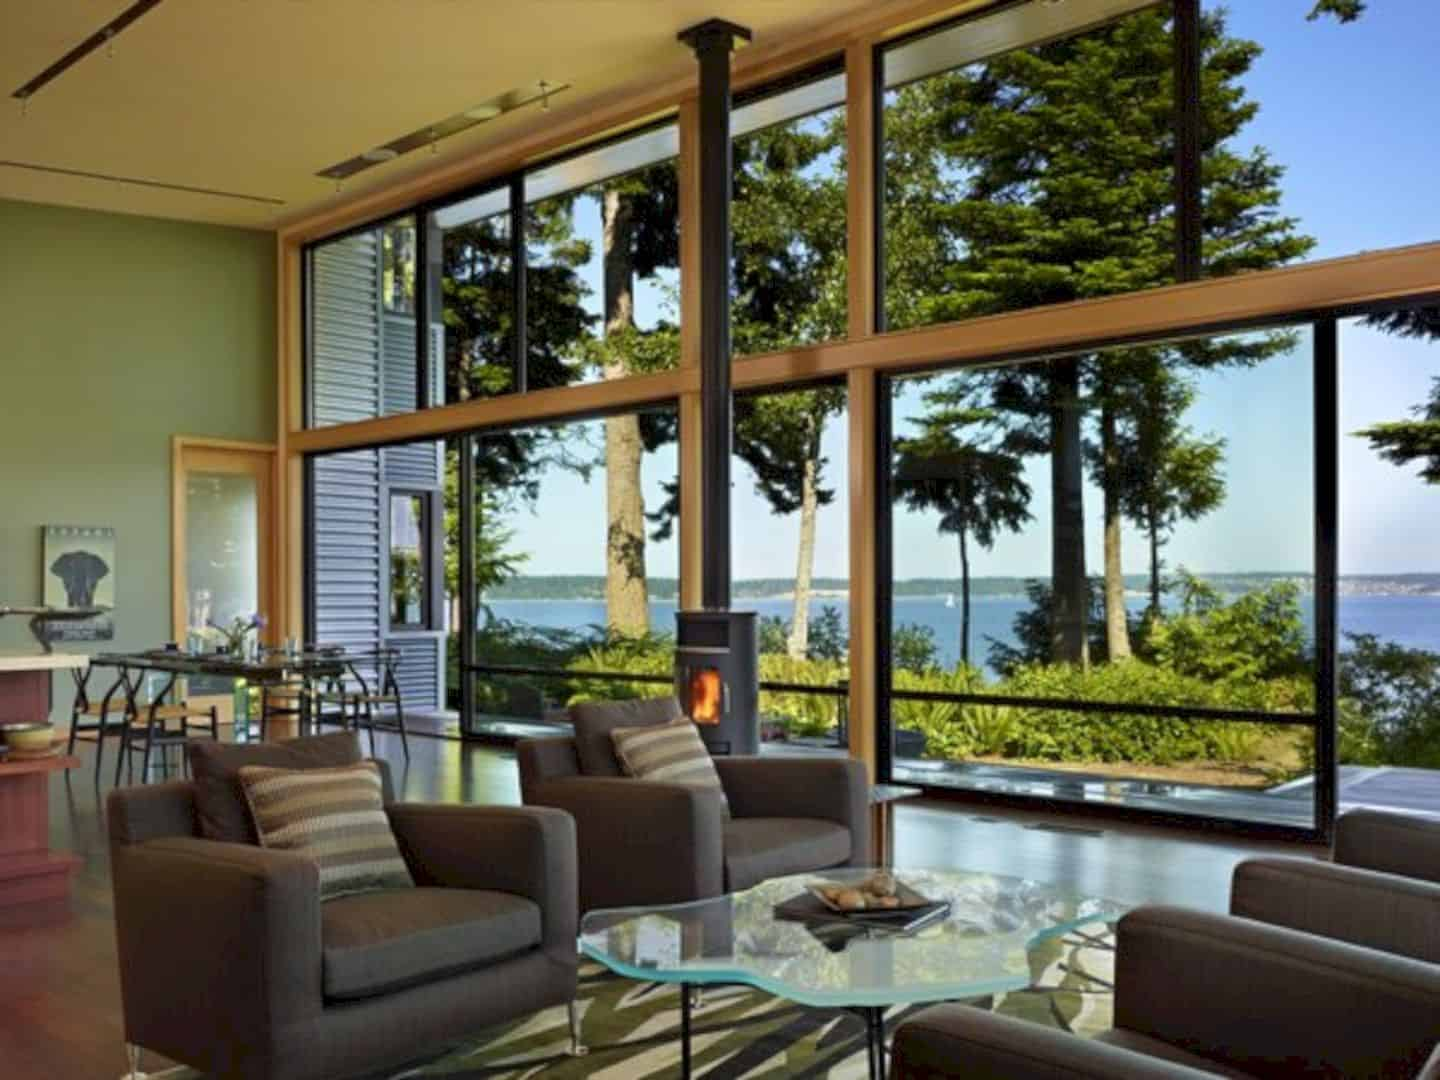 Port Ludlow House A Compact Modern House On A Wooded Waterfront Property 3